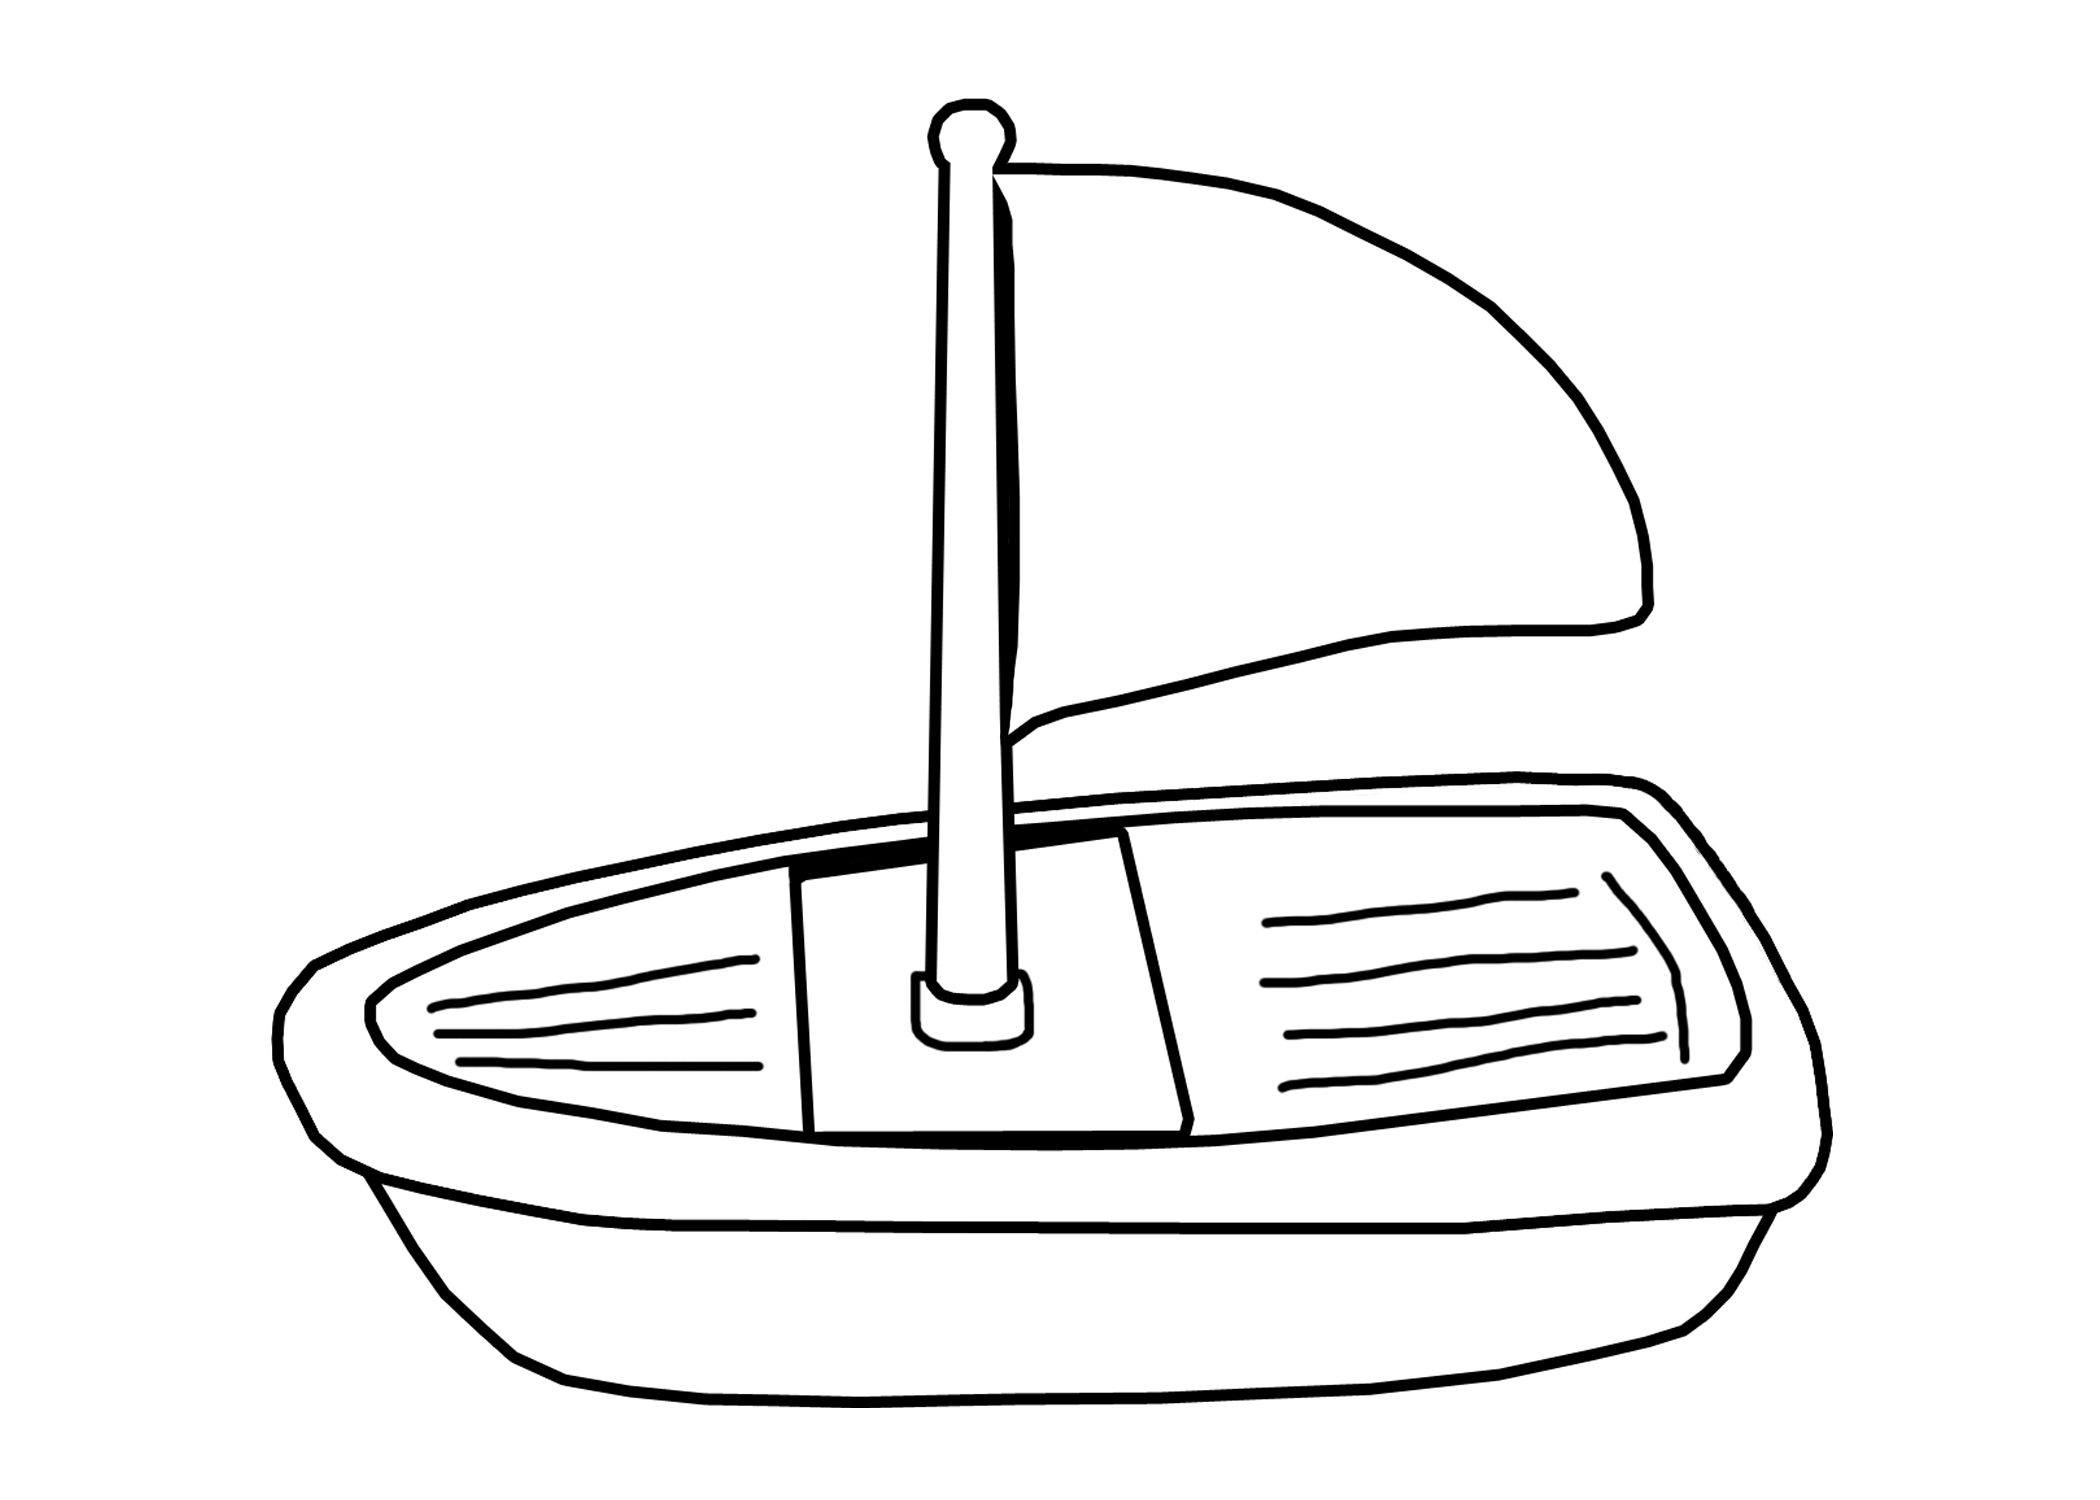 Boat coloring #3, Download drawings